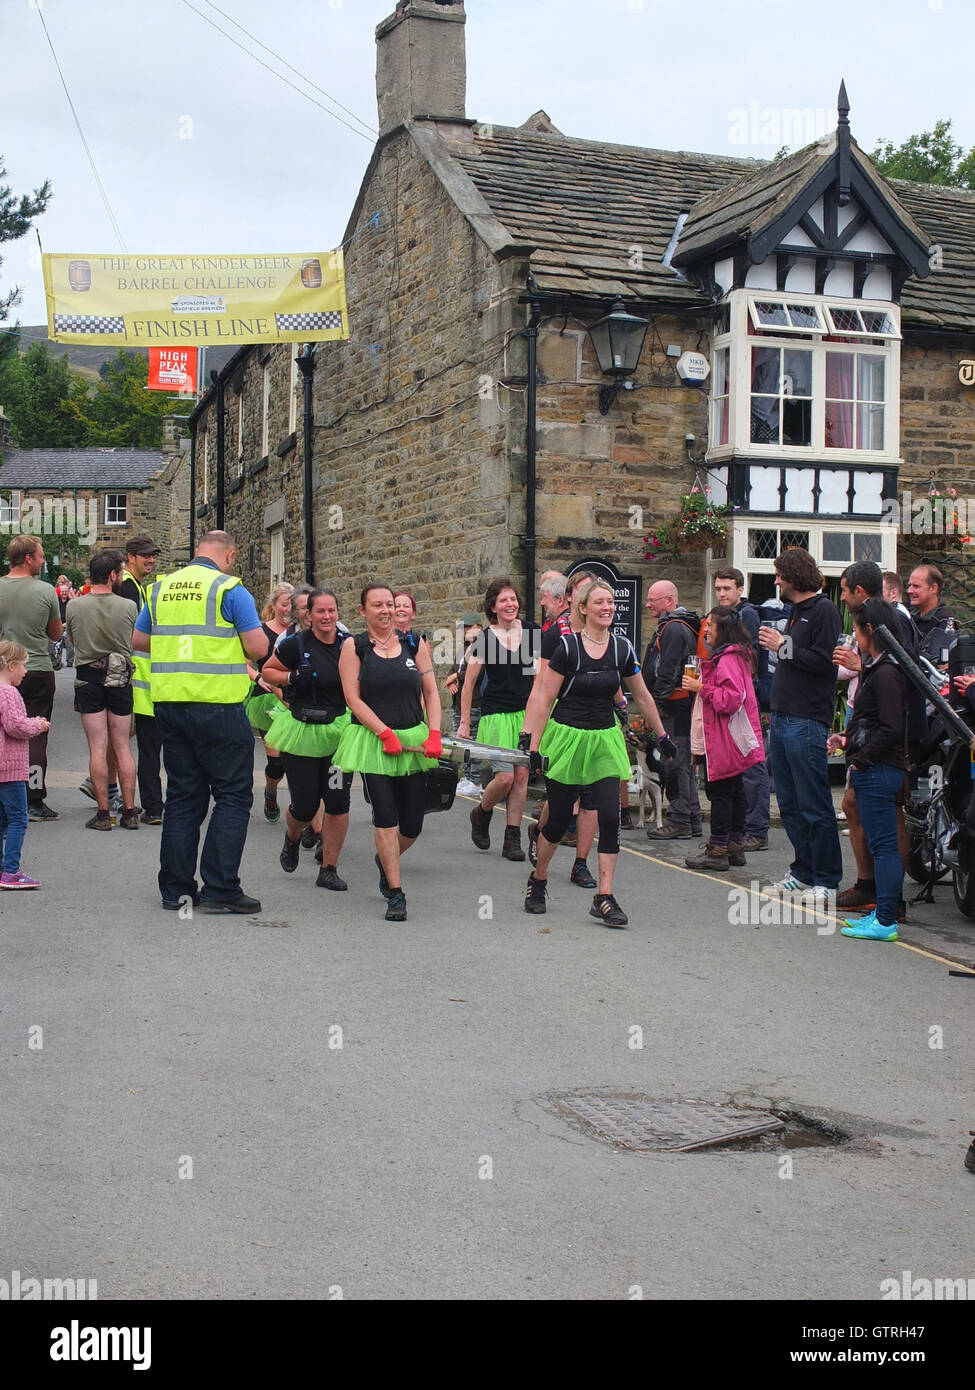 Edale, Derbyshire, UK. 10th September 2016. Competitors race in the annual Great Kinder Beer Barrel Challenge. Begun Stock Photo